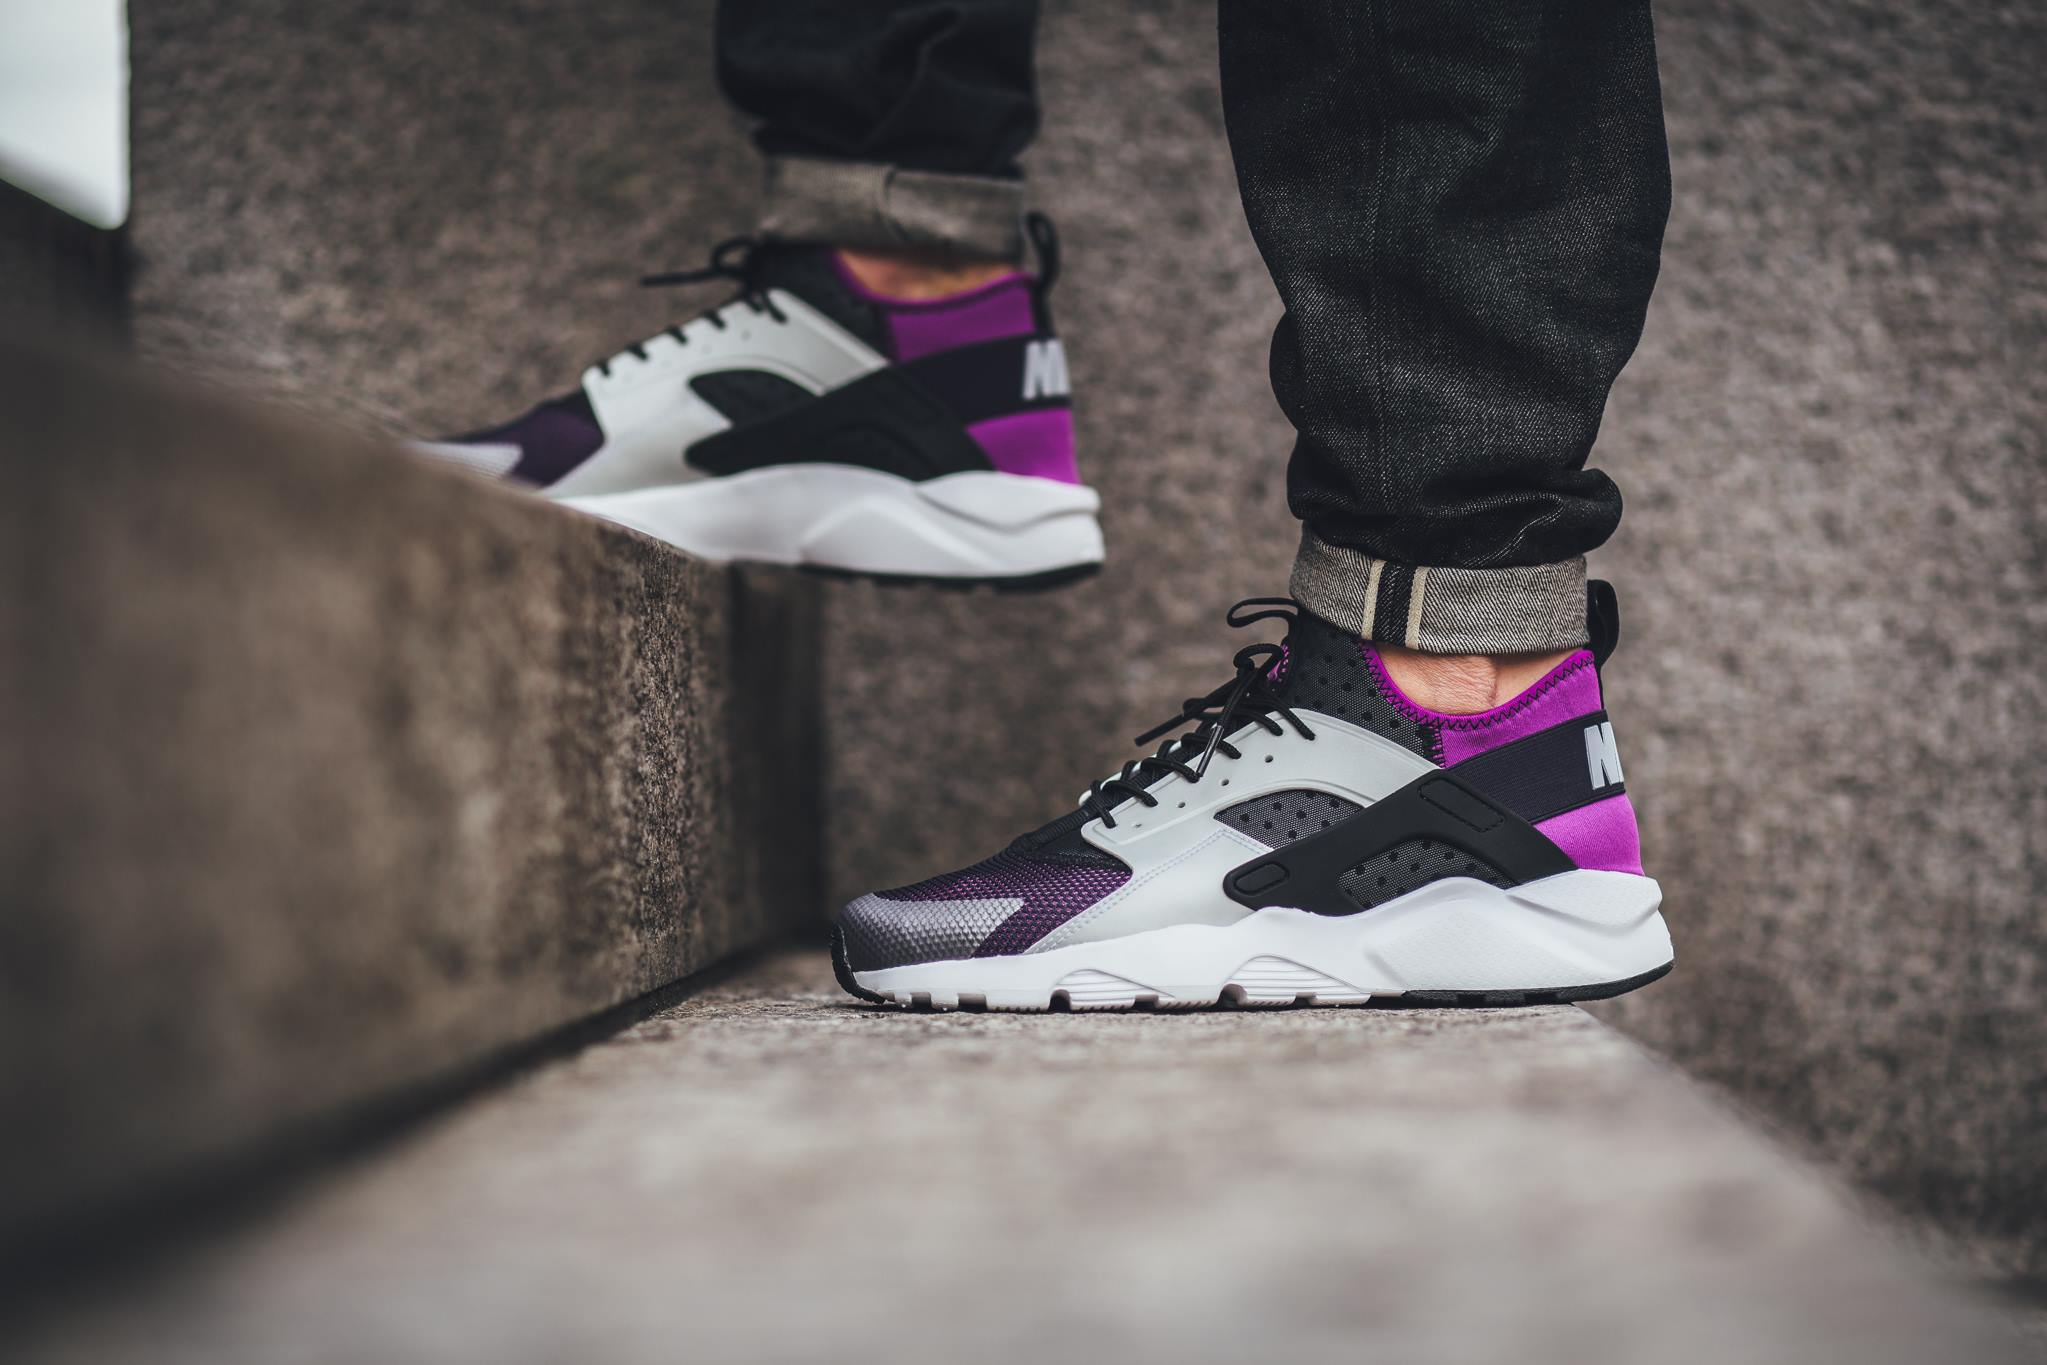 c41fde058faf Nike Air Huarache Run Ultra Purple Dynasty - Air 23 - Air Jordan ...